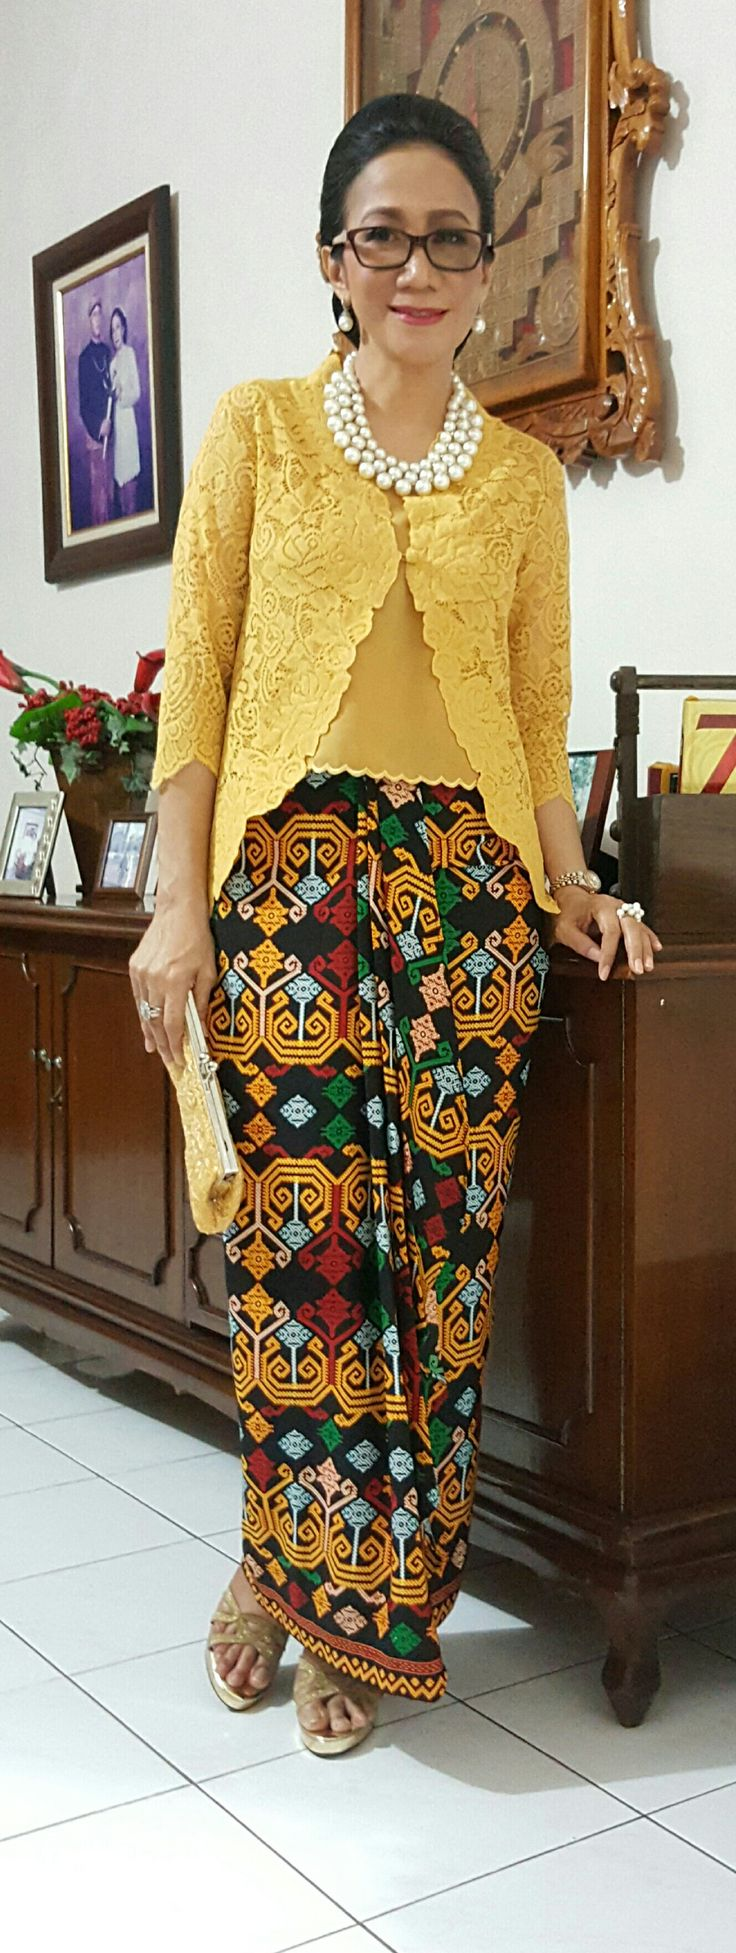 best style images on pinterest hijab styles batik dress and